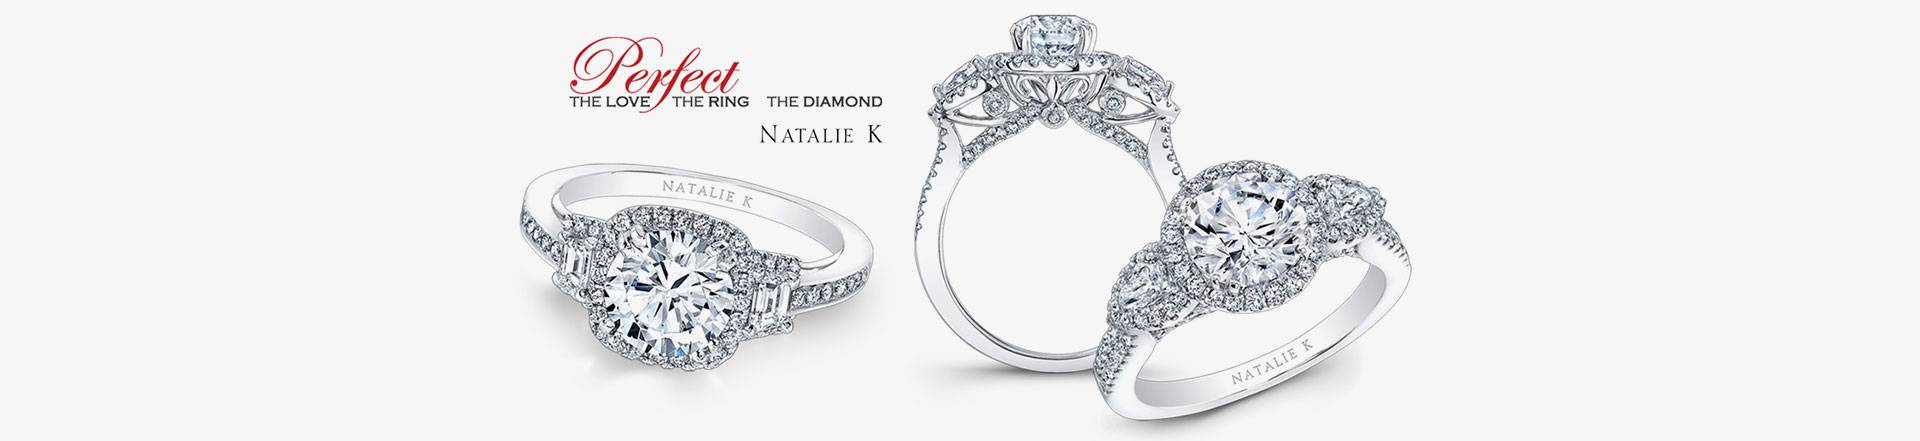 k natalie jack cut kelege ring for every gold engagement rs rose brilliant style content rings